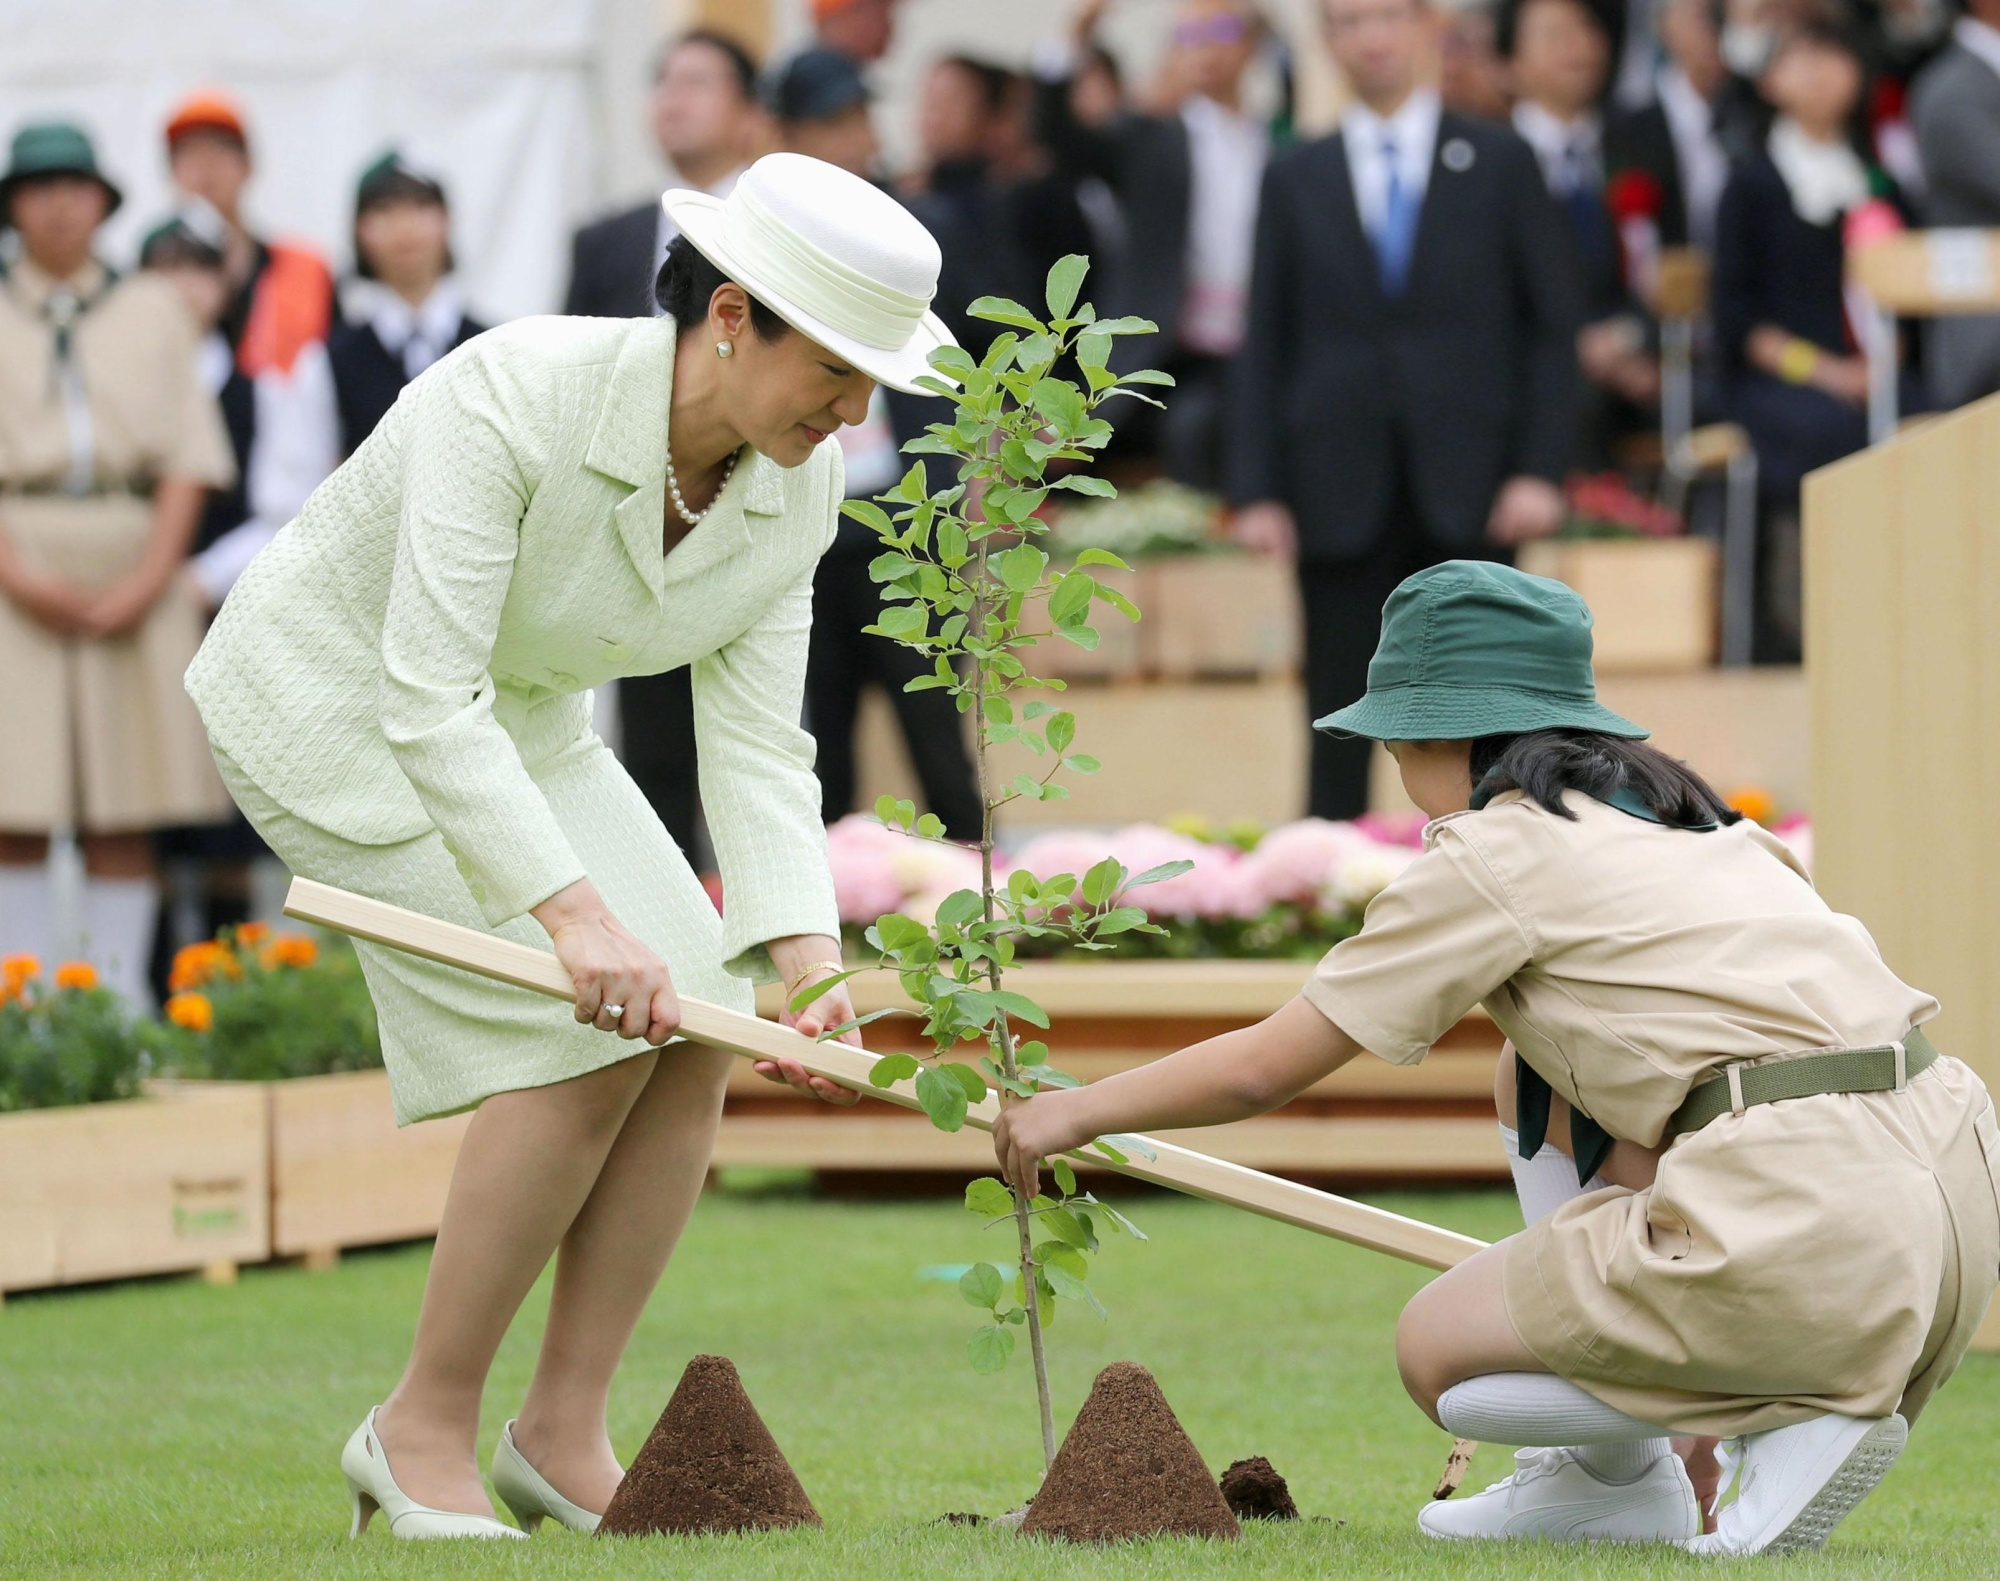 Empress Masako plants a tree during a national tree-planting ceremony in Owariasahi, Aichi Prefecture, on Sunday in her first official duty outside Tokyo since Emperor Naruhito ascended the throne on May 1. | KYODO